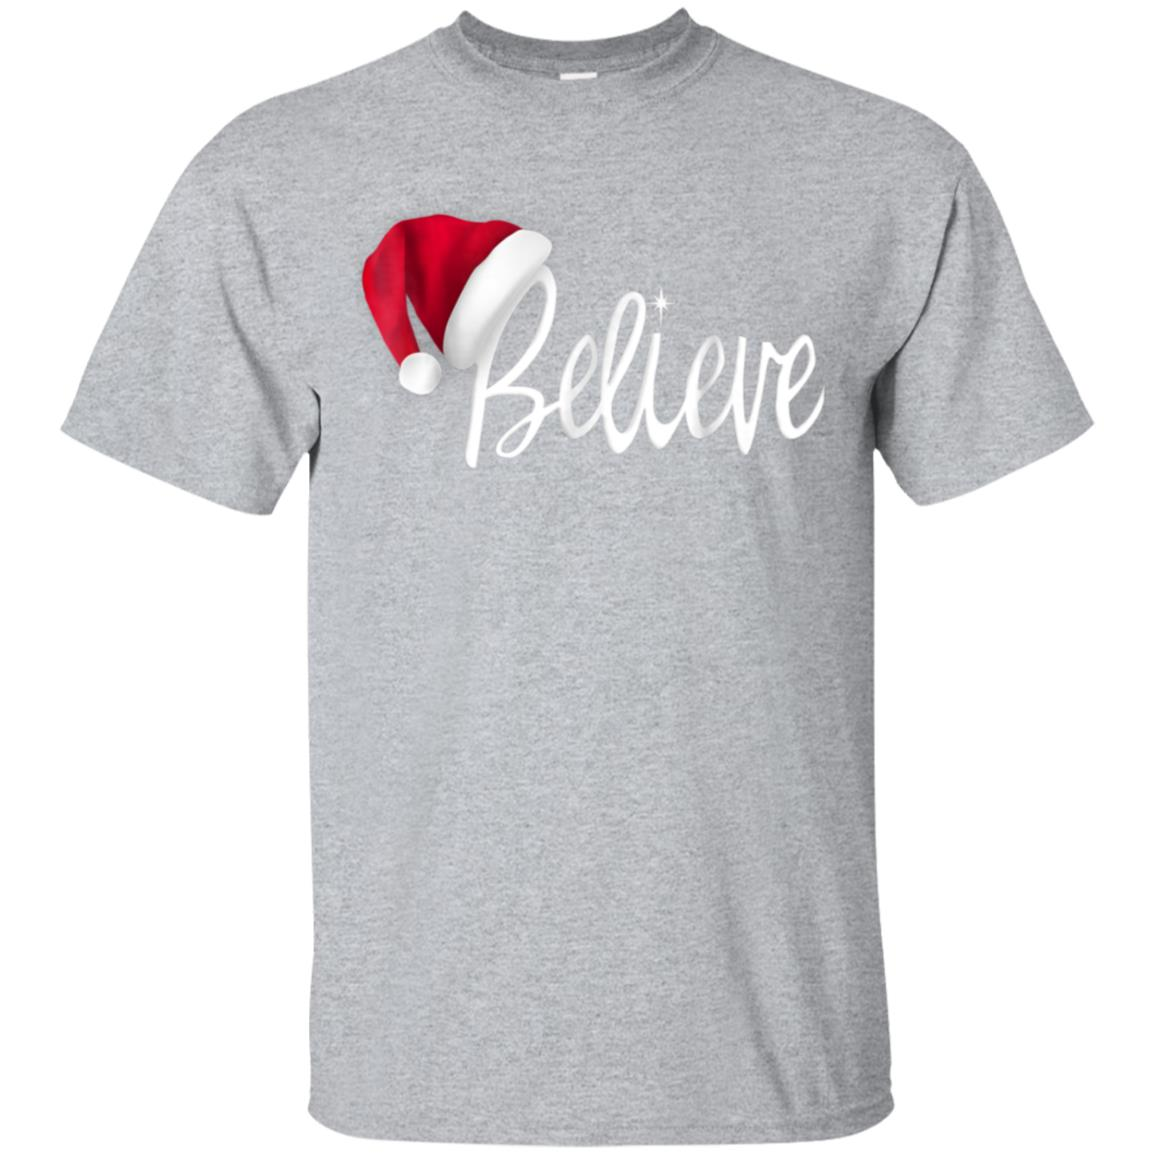 Christmas T-Shirt - Believe in Santa Claus Shirt 99promocode